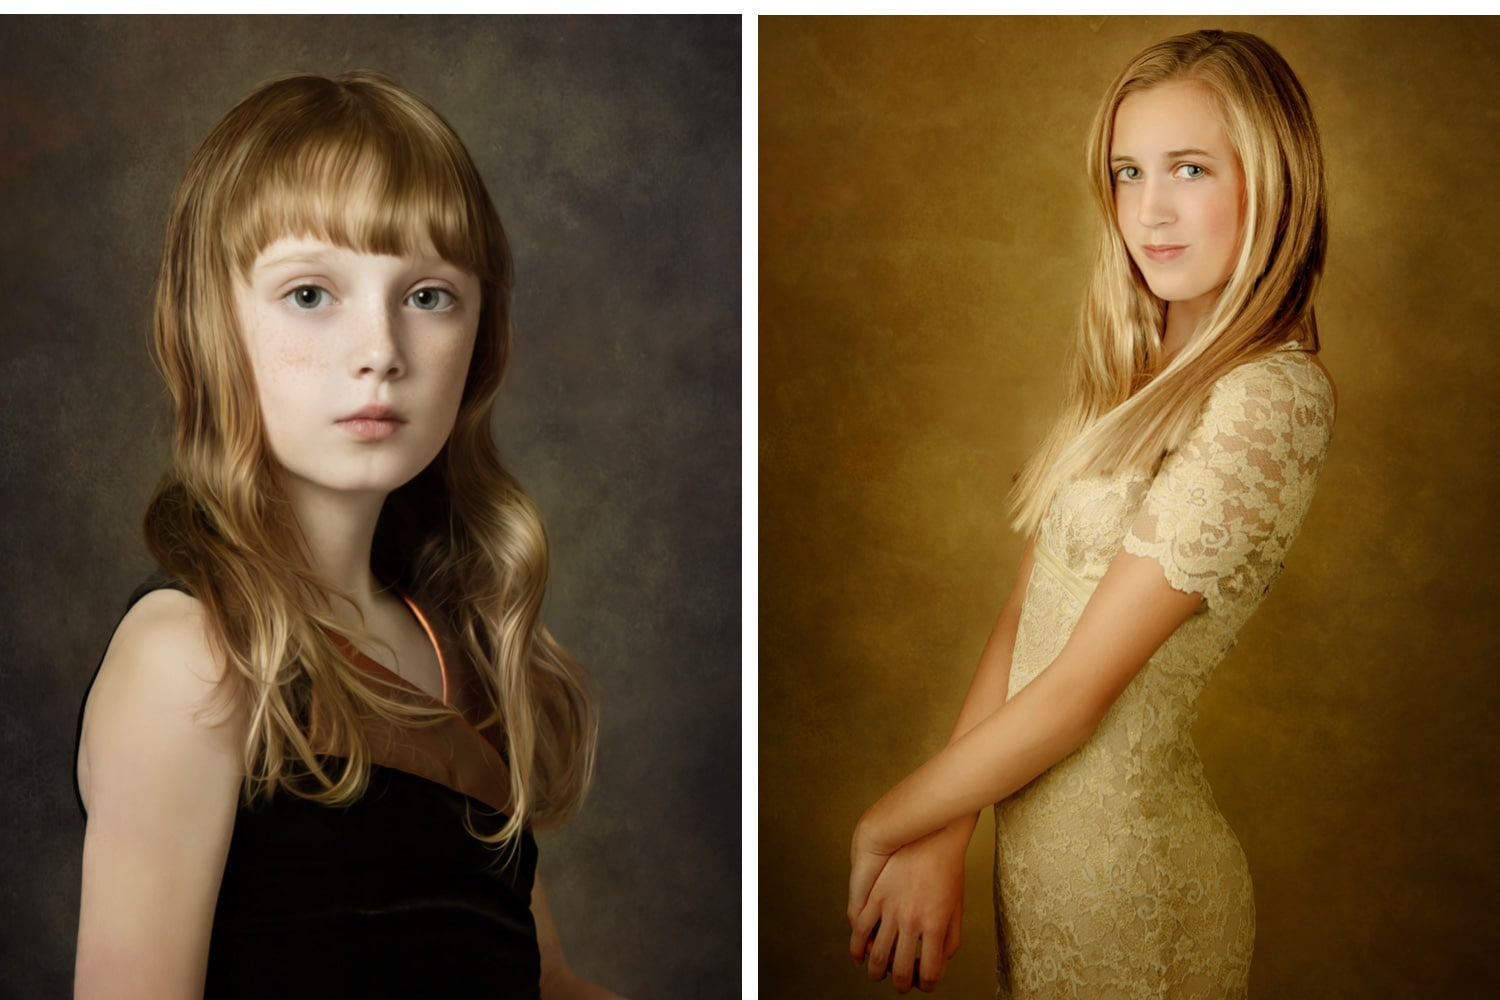 bellingham fine art portrait photo young model teen